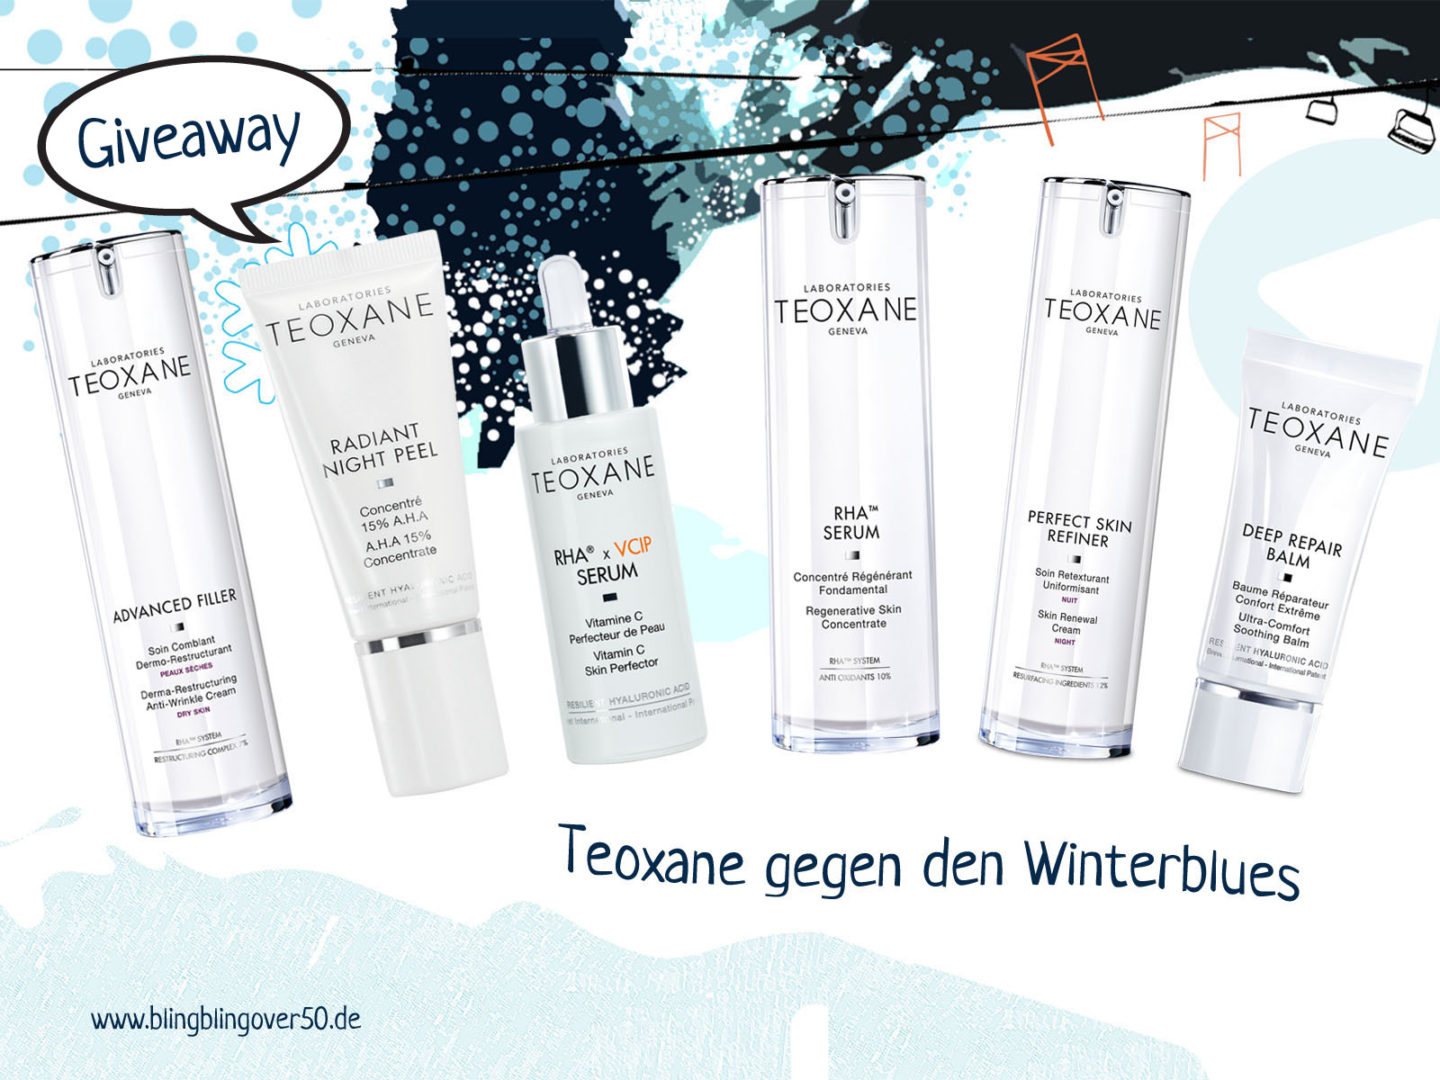 Teoxane gegen den Winterblues #Giveaway